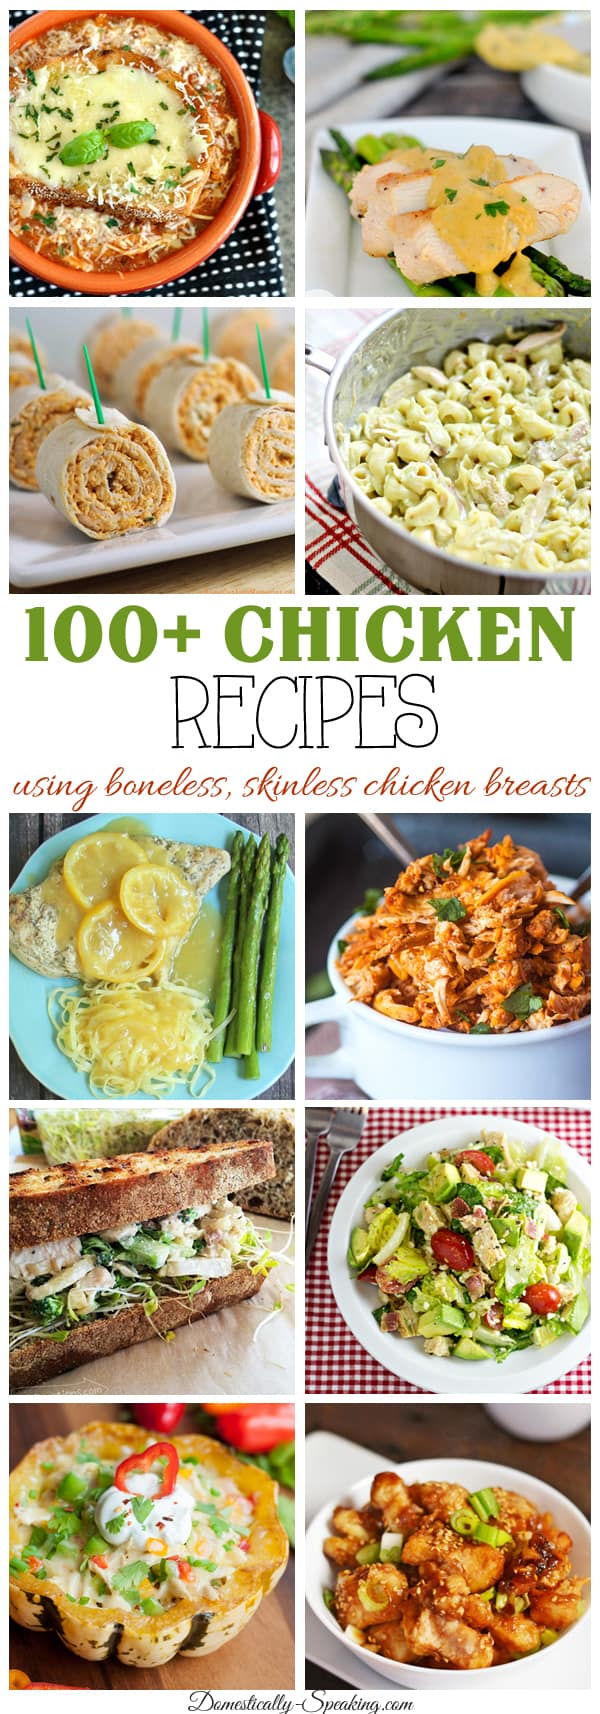 100+ Recipes using Boneless, Skinless Chicken Breasts no more boring dinners